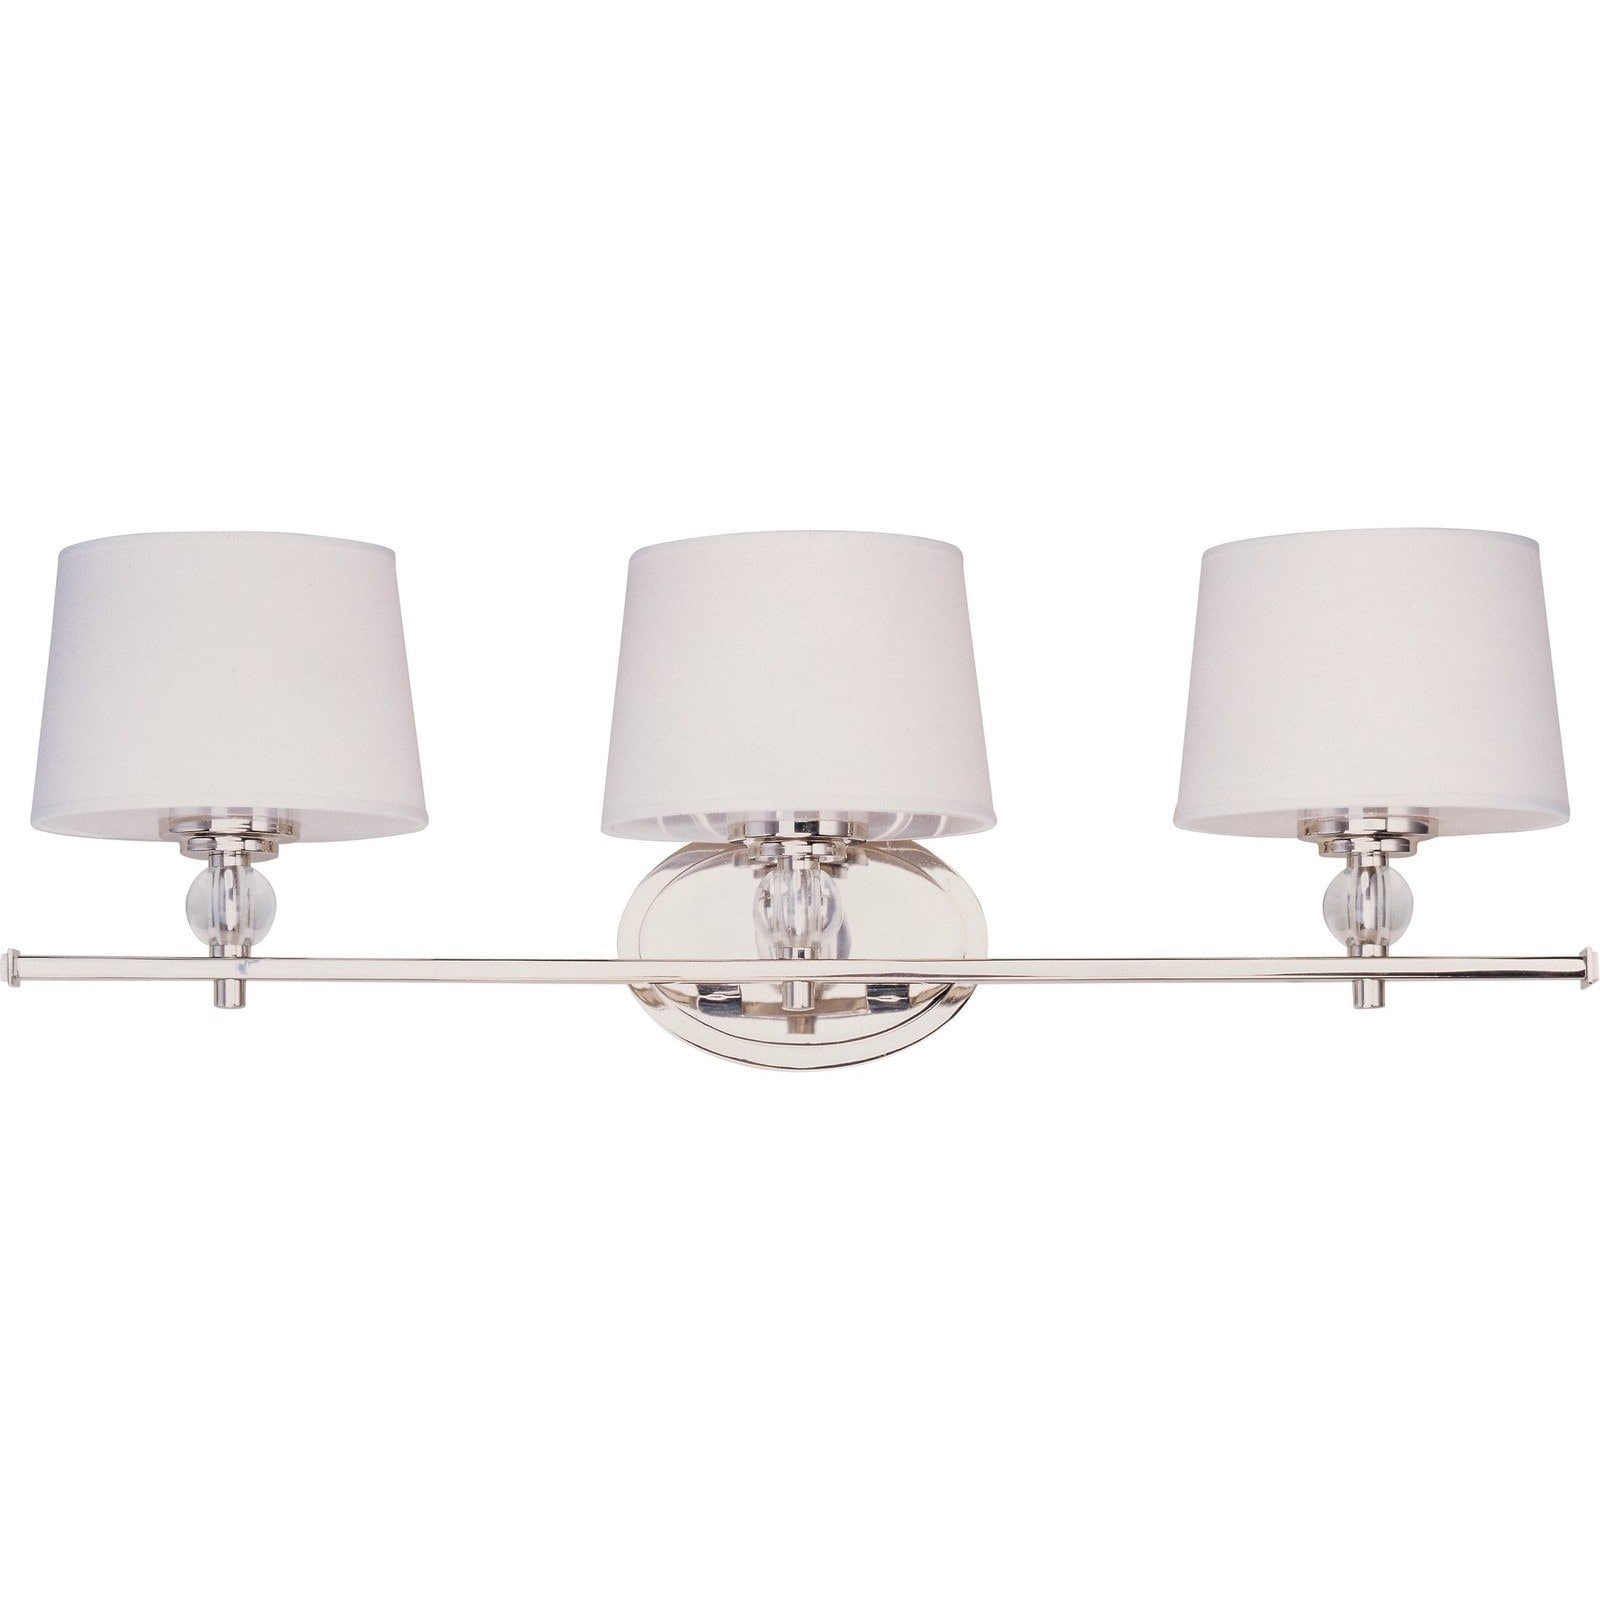 zoom fusion vanity nuvo light fixture collection lamp